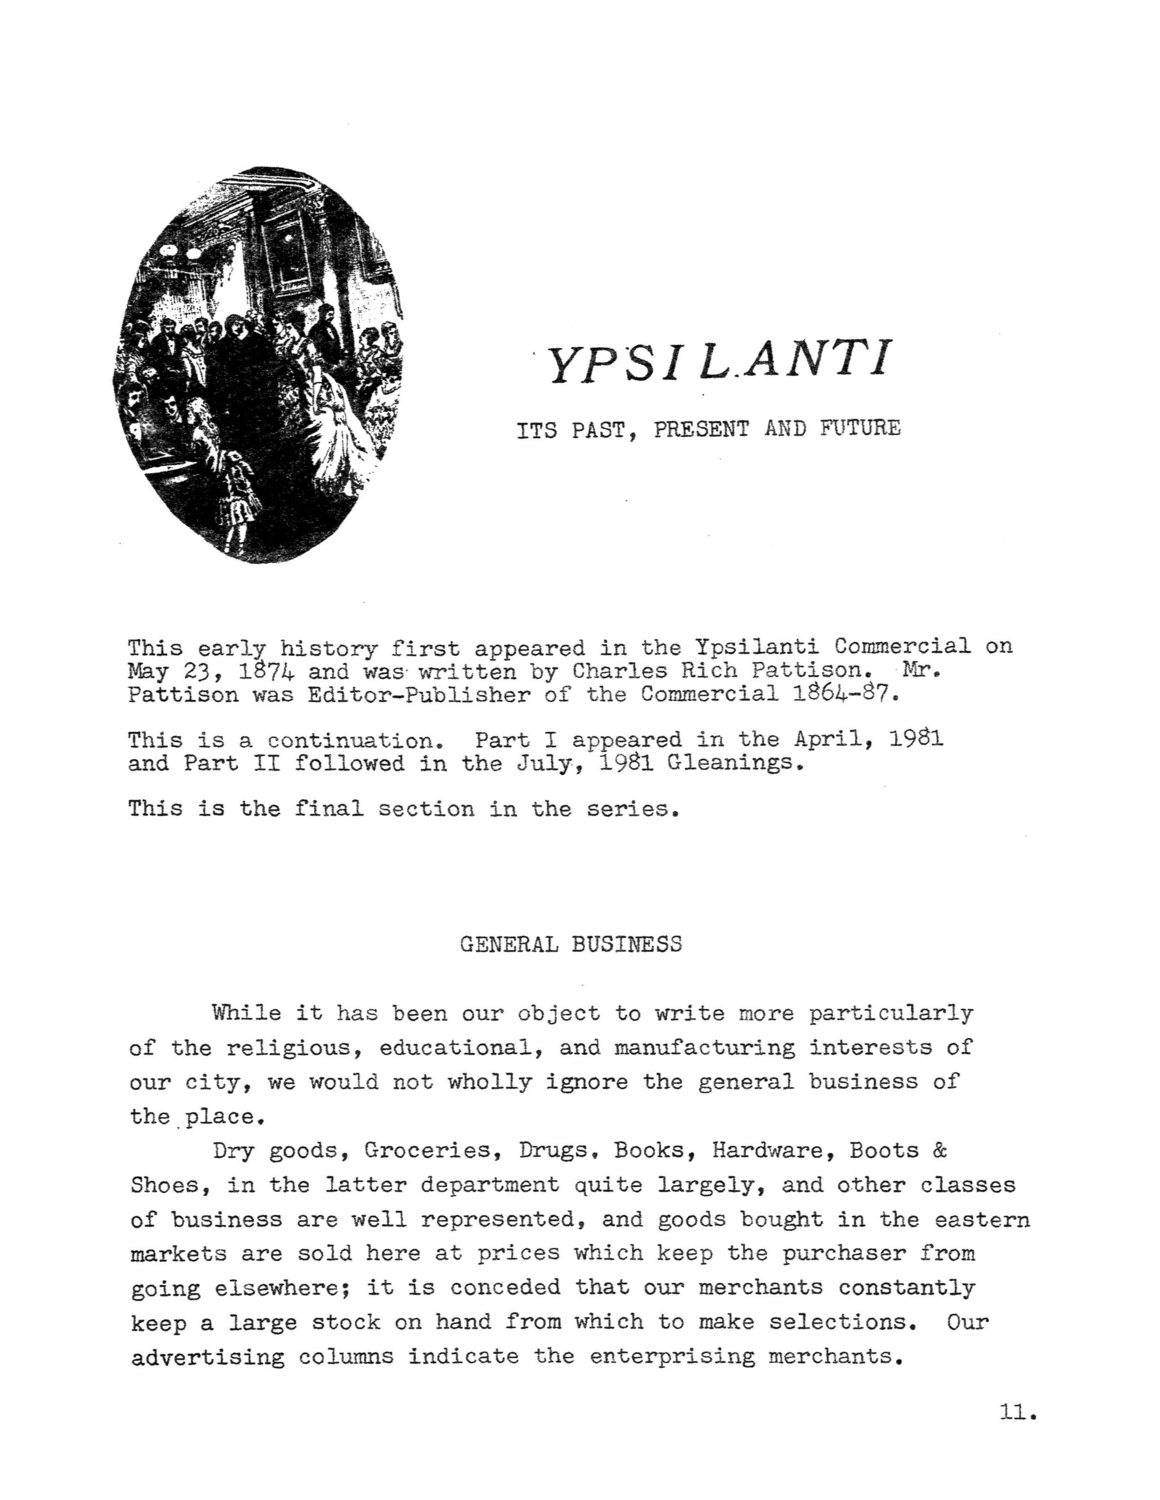 Ypsilanti: Its Past, Present and Future (Part III) image